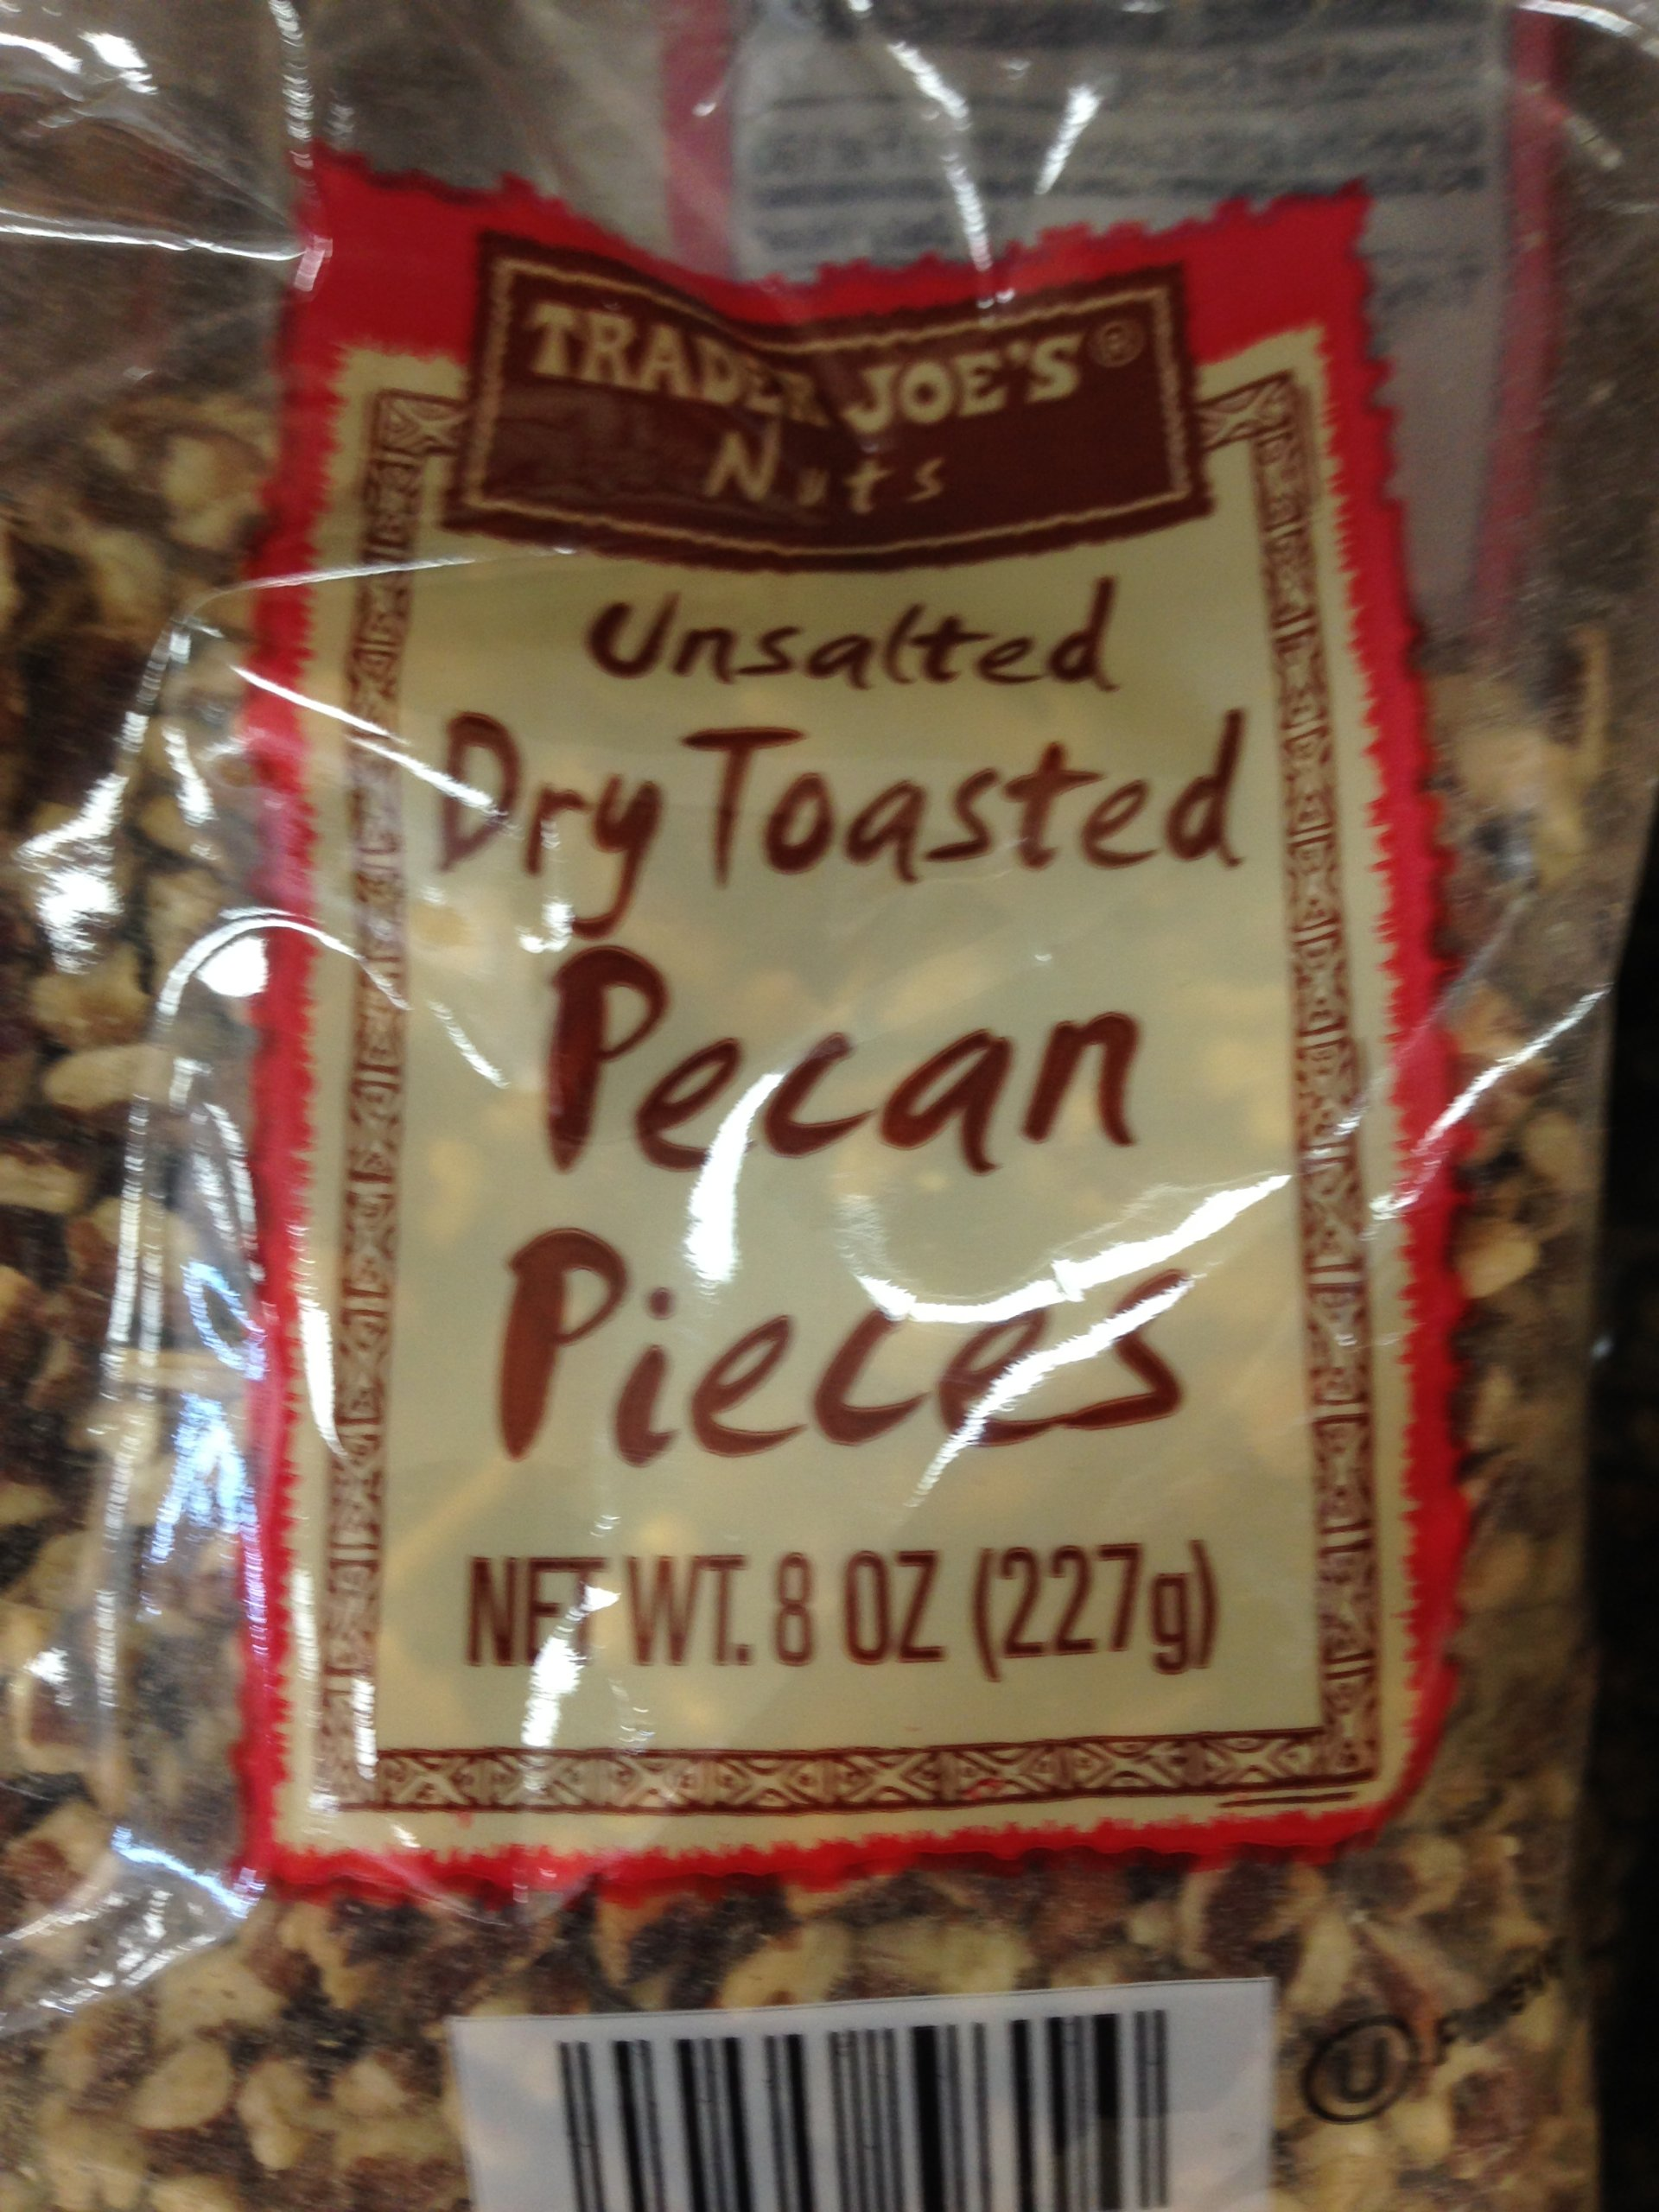 Trader Joe's Unsalted Dry Toasted Pecan Pieces (Pack of 2)